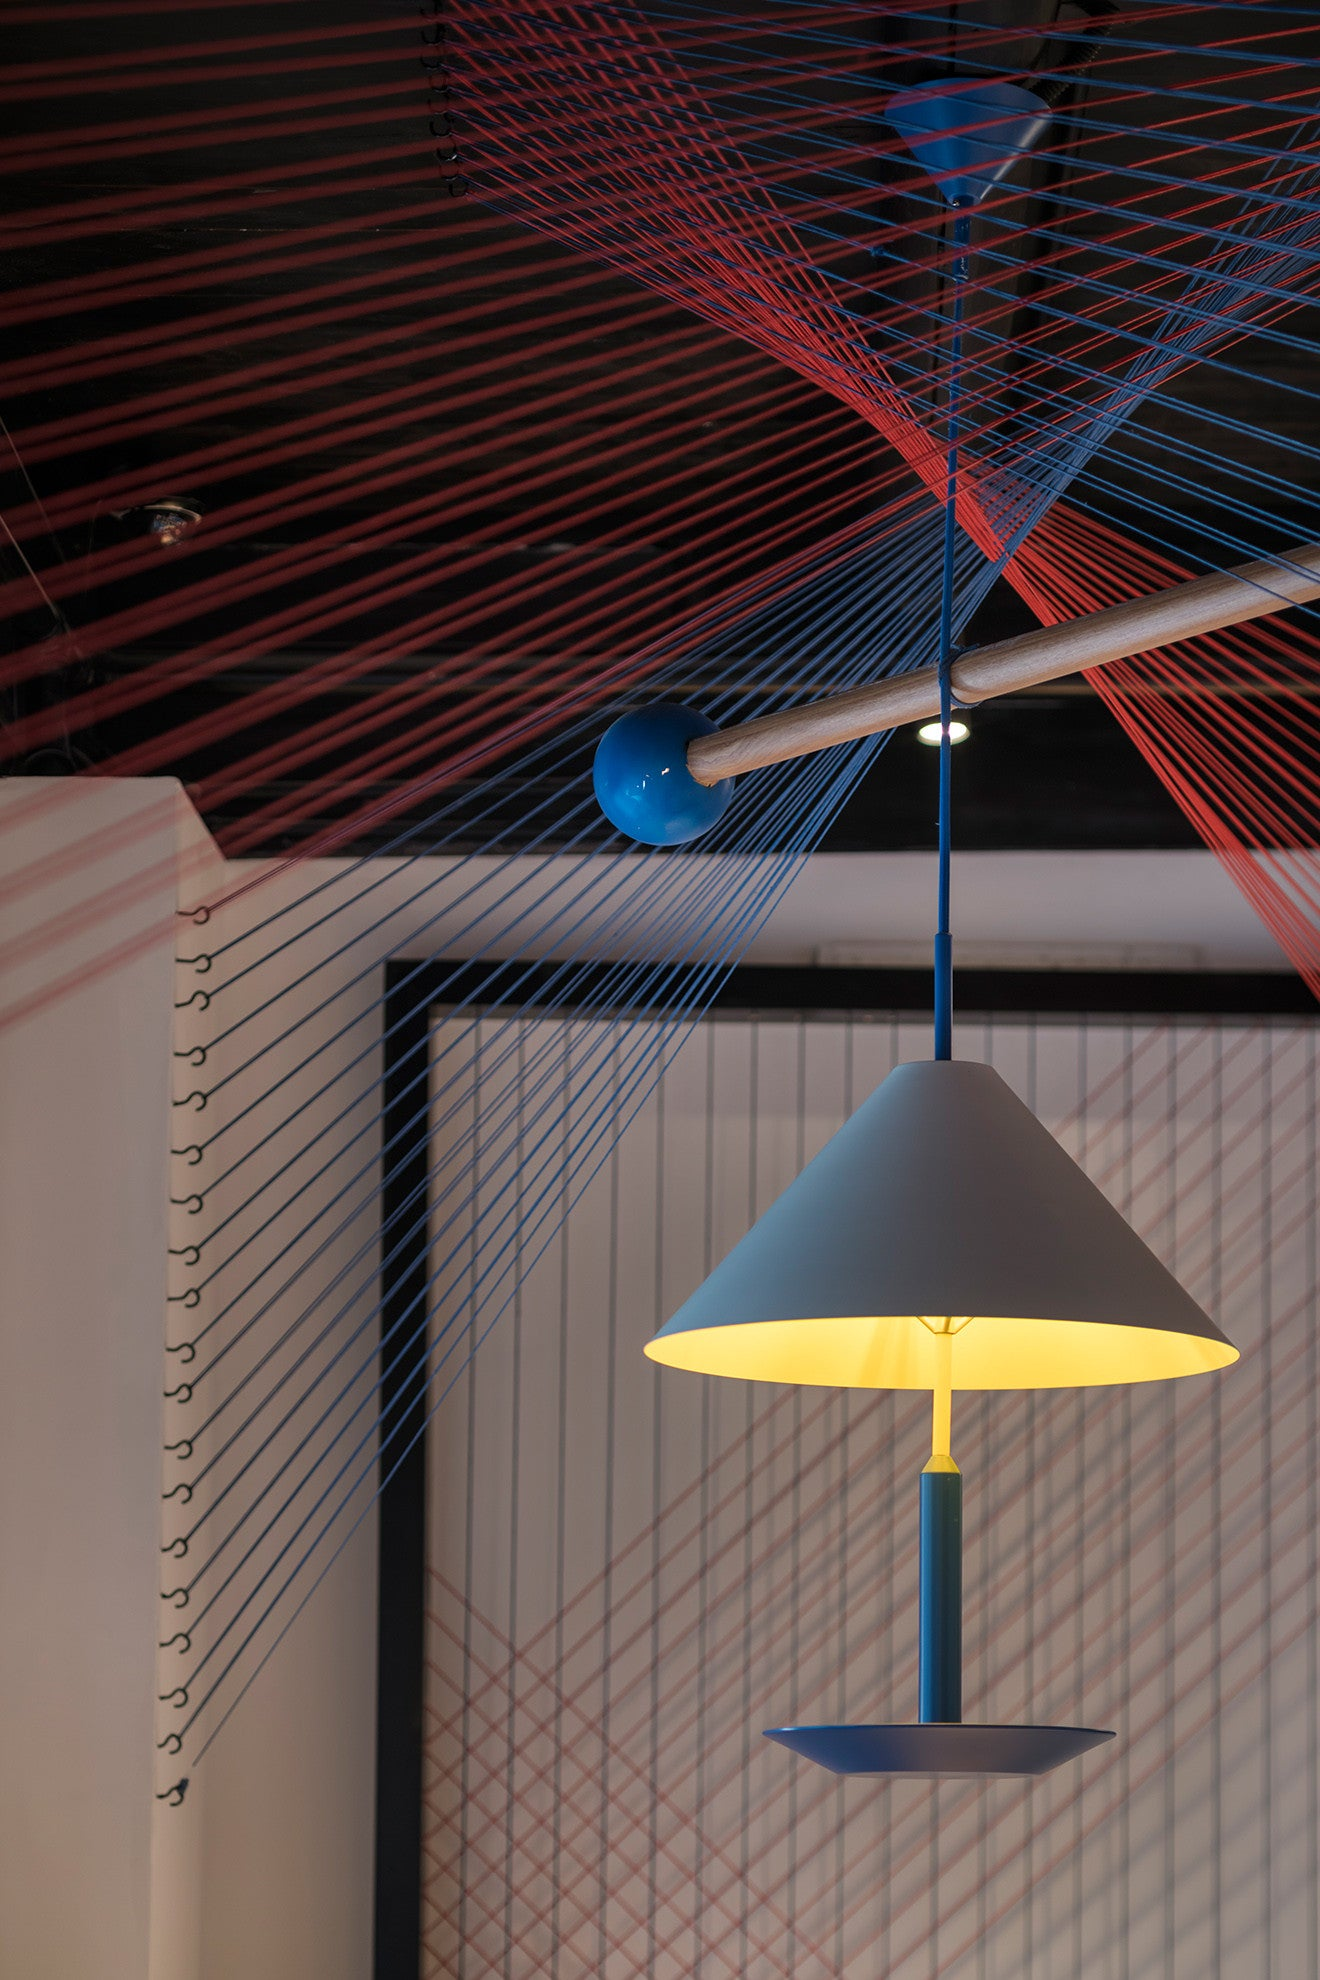 Modern bird feeder style pendant light with string artwork - Nanxun Hotel designed by Dariel Studio